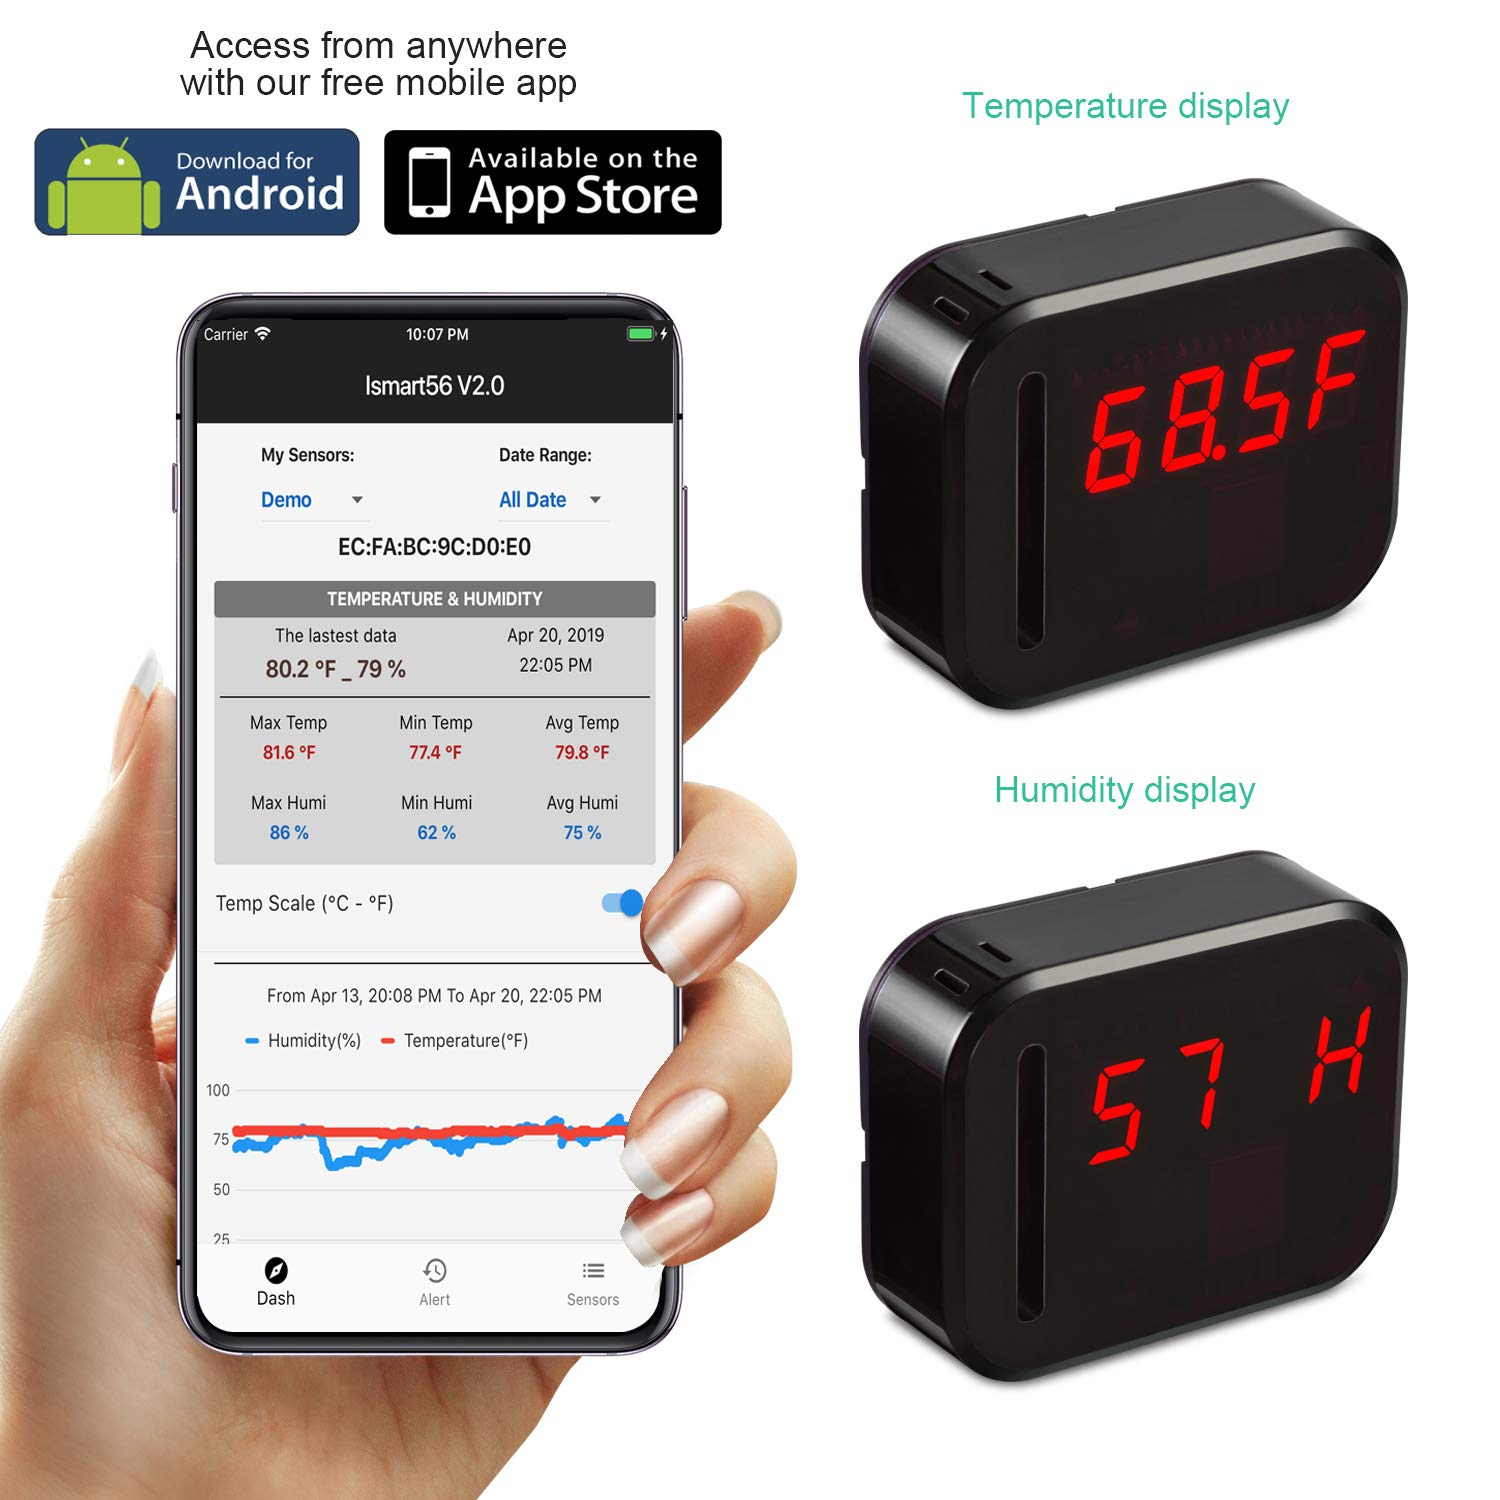 WiFi Temperature Humidity monitor, LED Digital Thermometer Hygrometer monitor, indoor/outdoor Temperature Humidity sensor with Alerts. Free iPhone/Android Apps, web browser monitor 24/7 from Anywhere